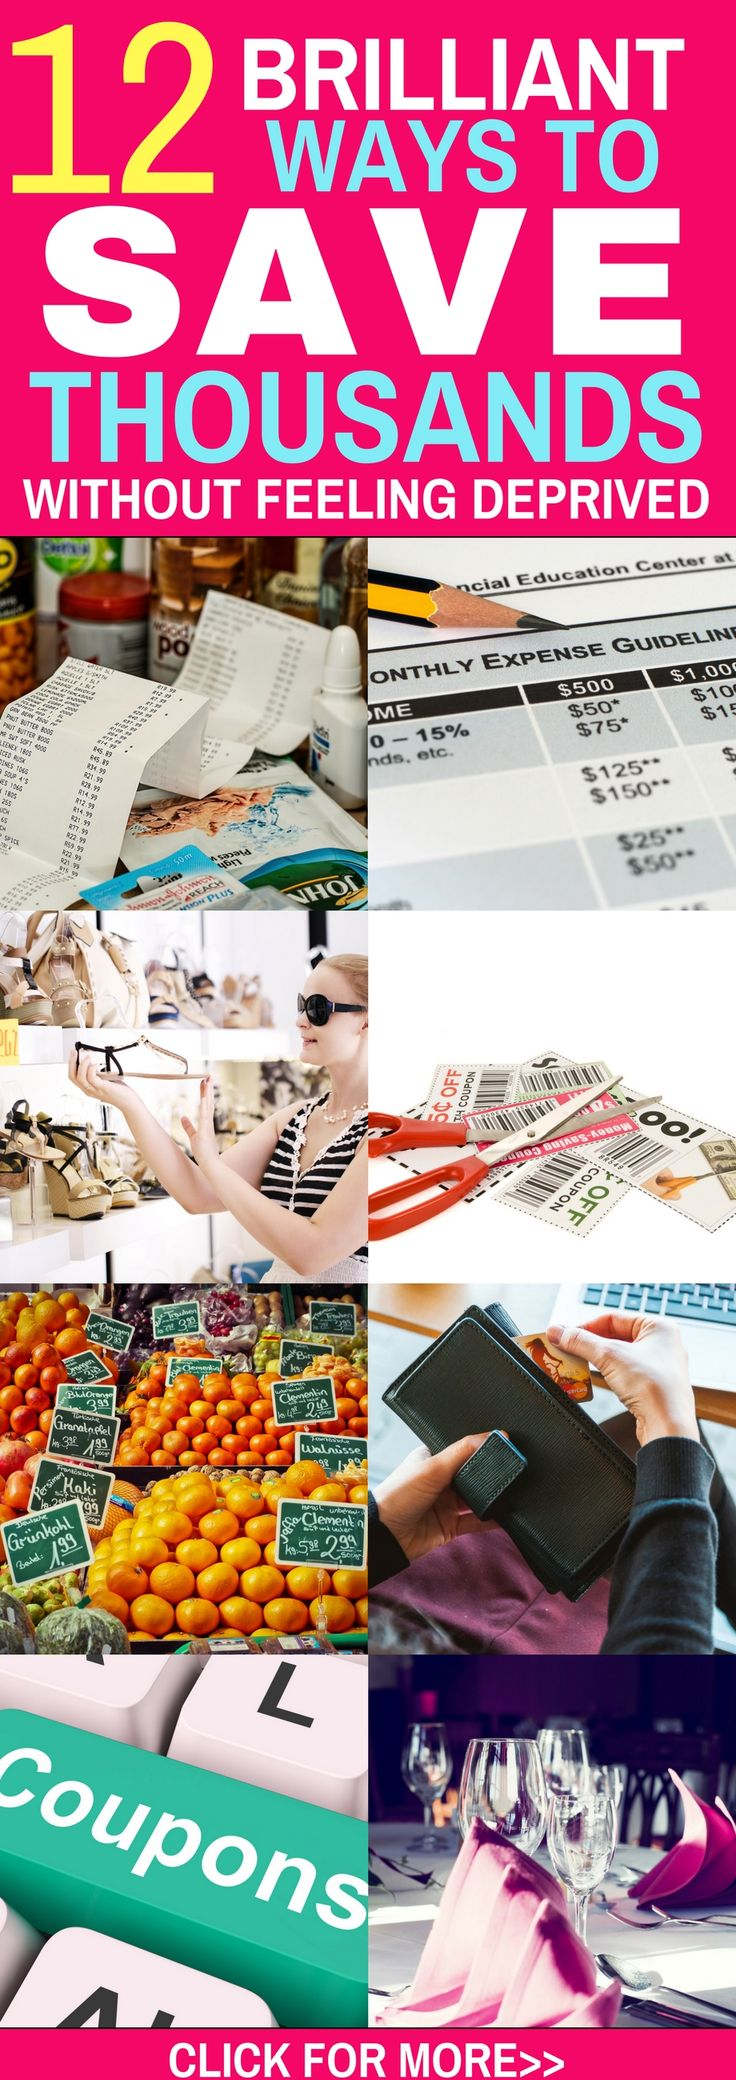 Brilliant ways to save money without feeling deprived. These are all easy ways to save $1000s each month on groceries, eating out, shopping and so much more. Click through to check out those save money tips!